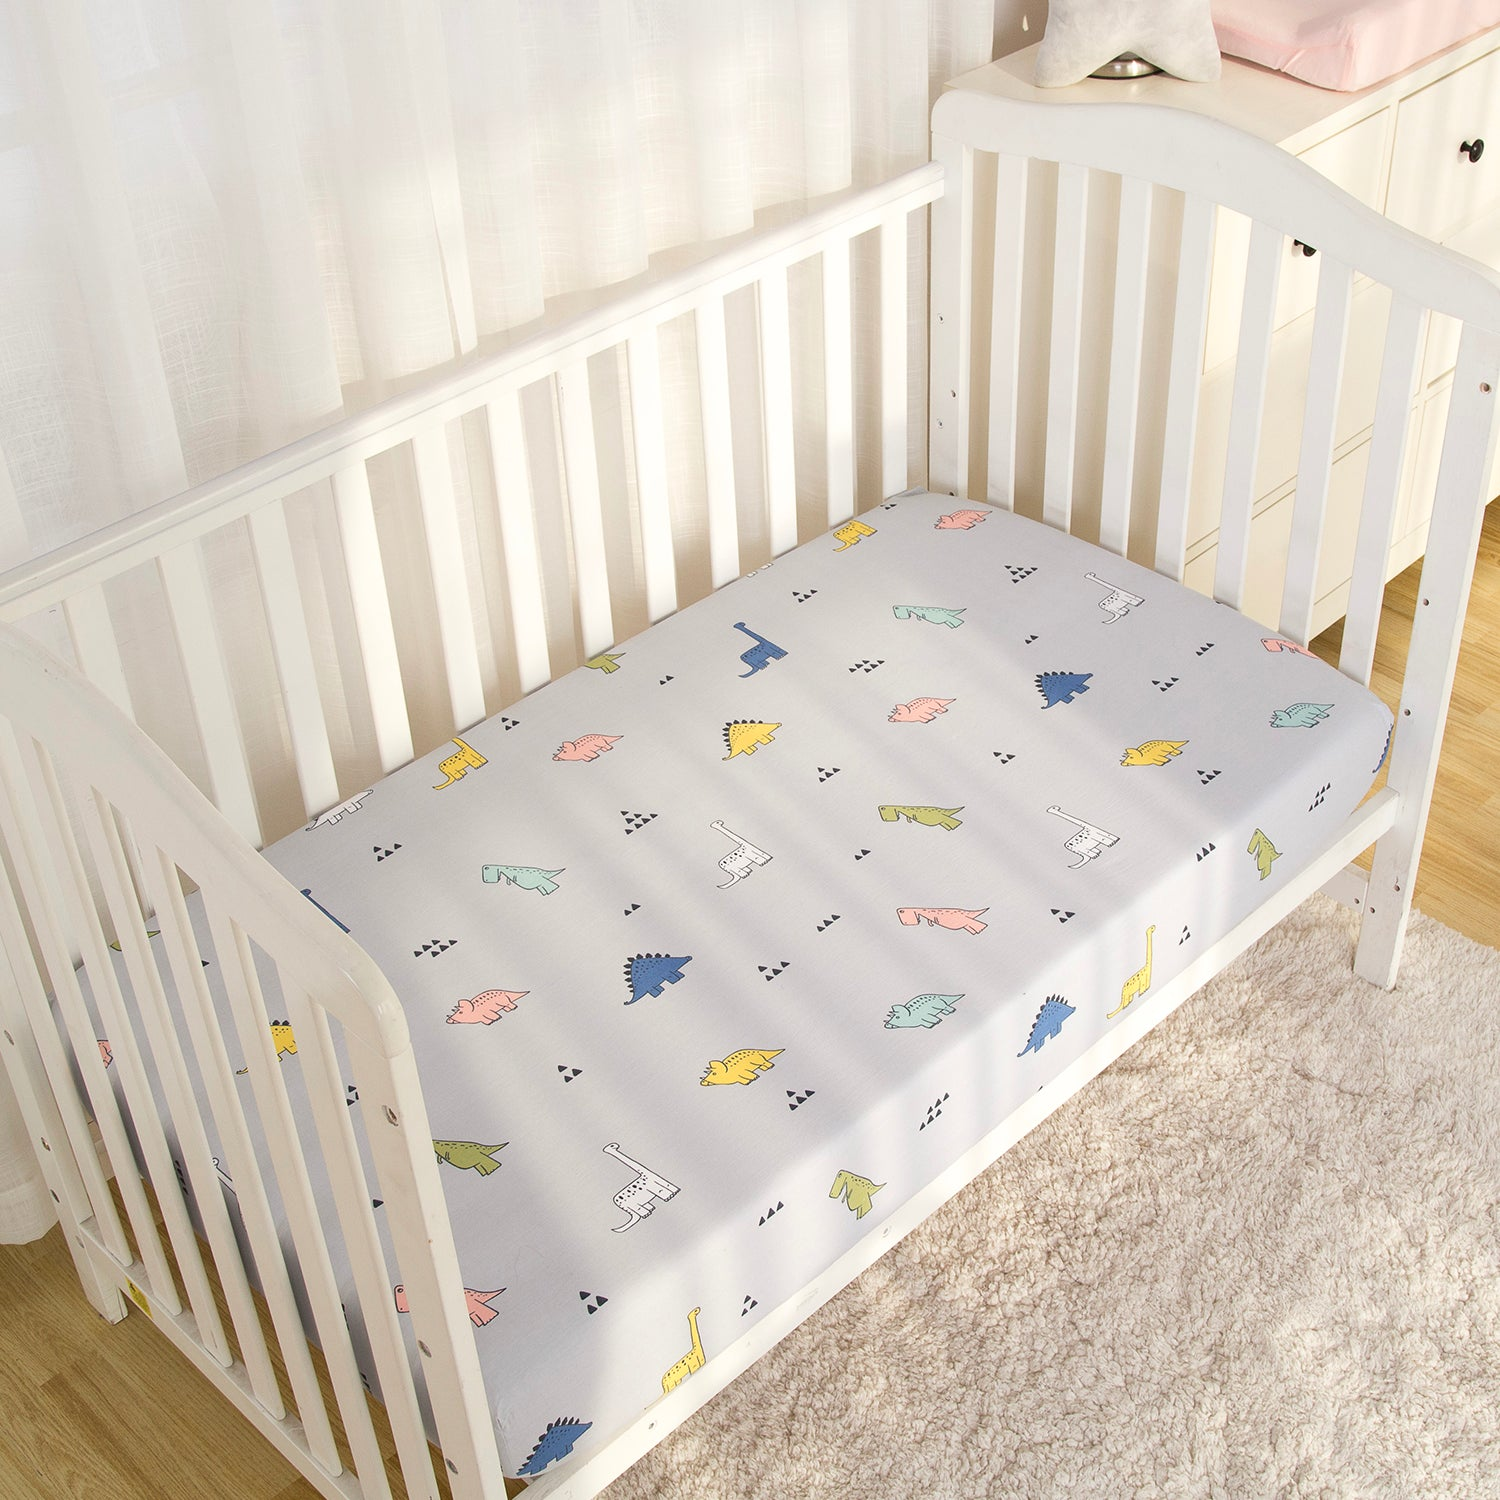 100% Cotton Crib Sheet - Dinosaurs